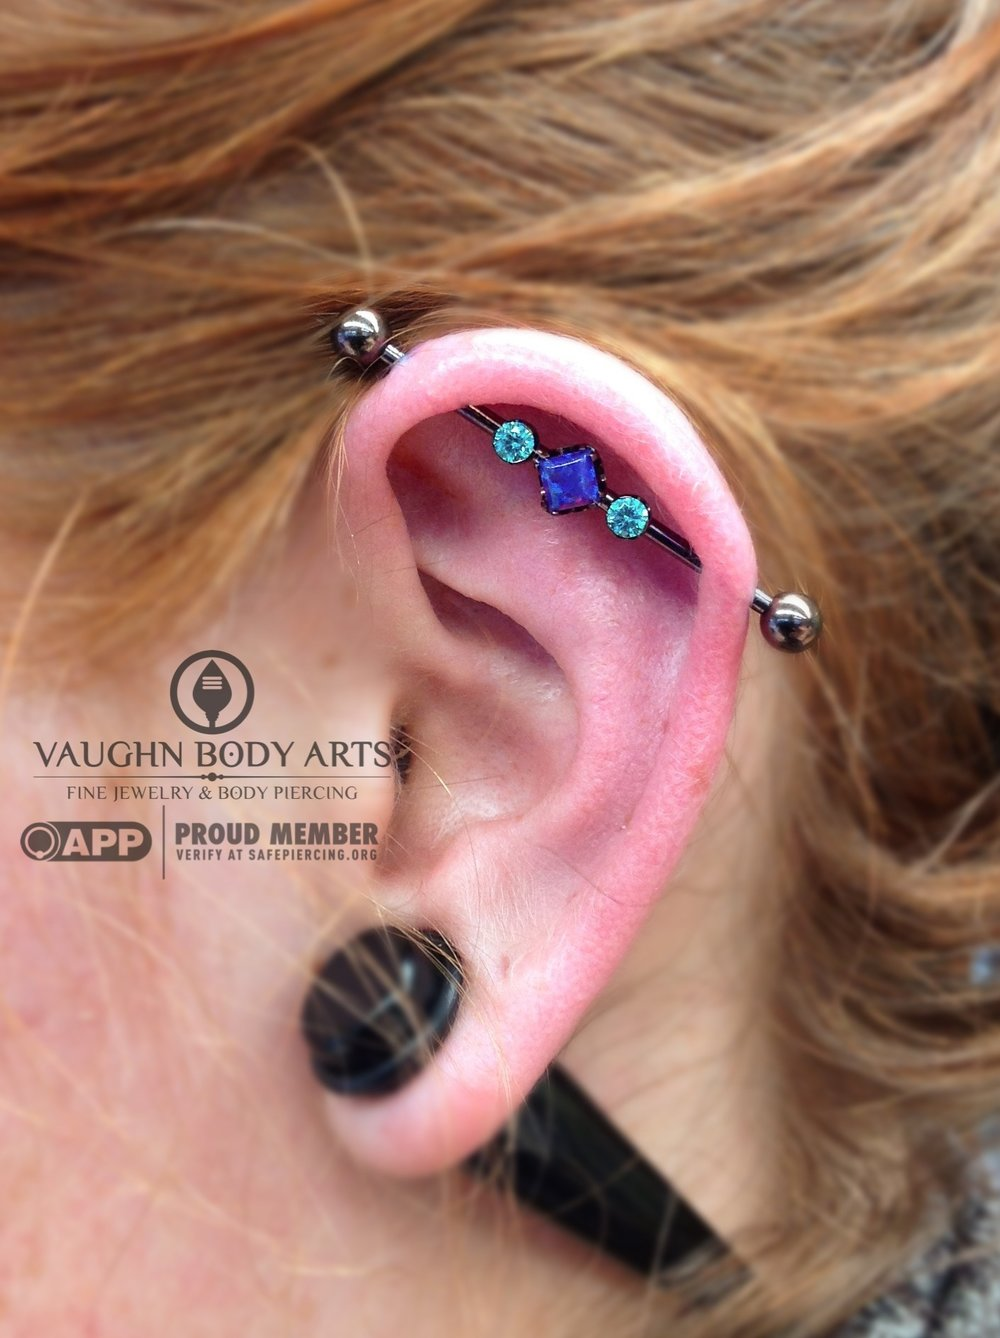 Industrial piercing with titanium jewelry from Anatometal.